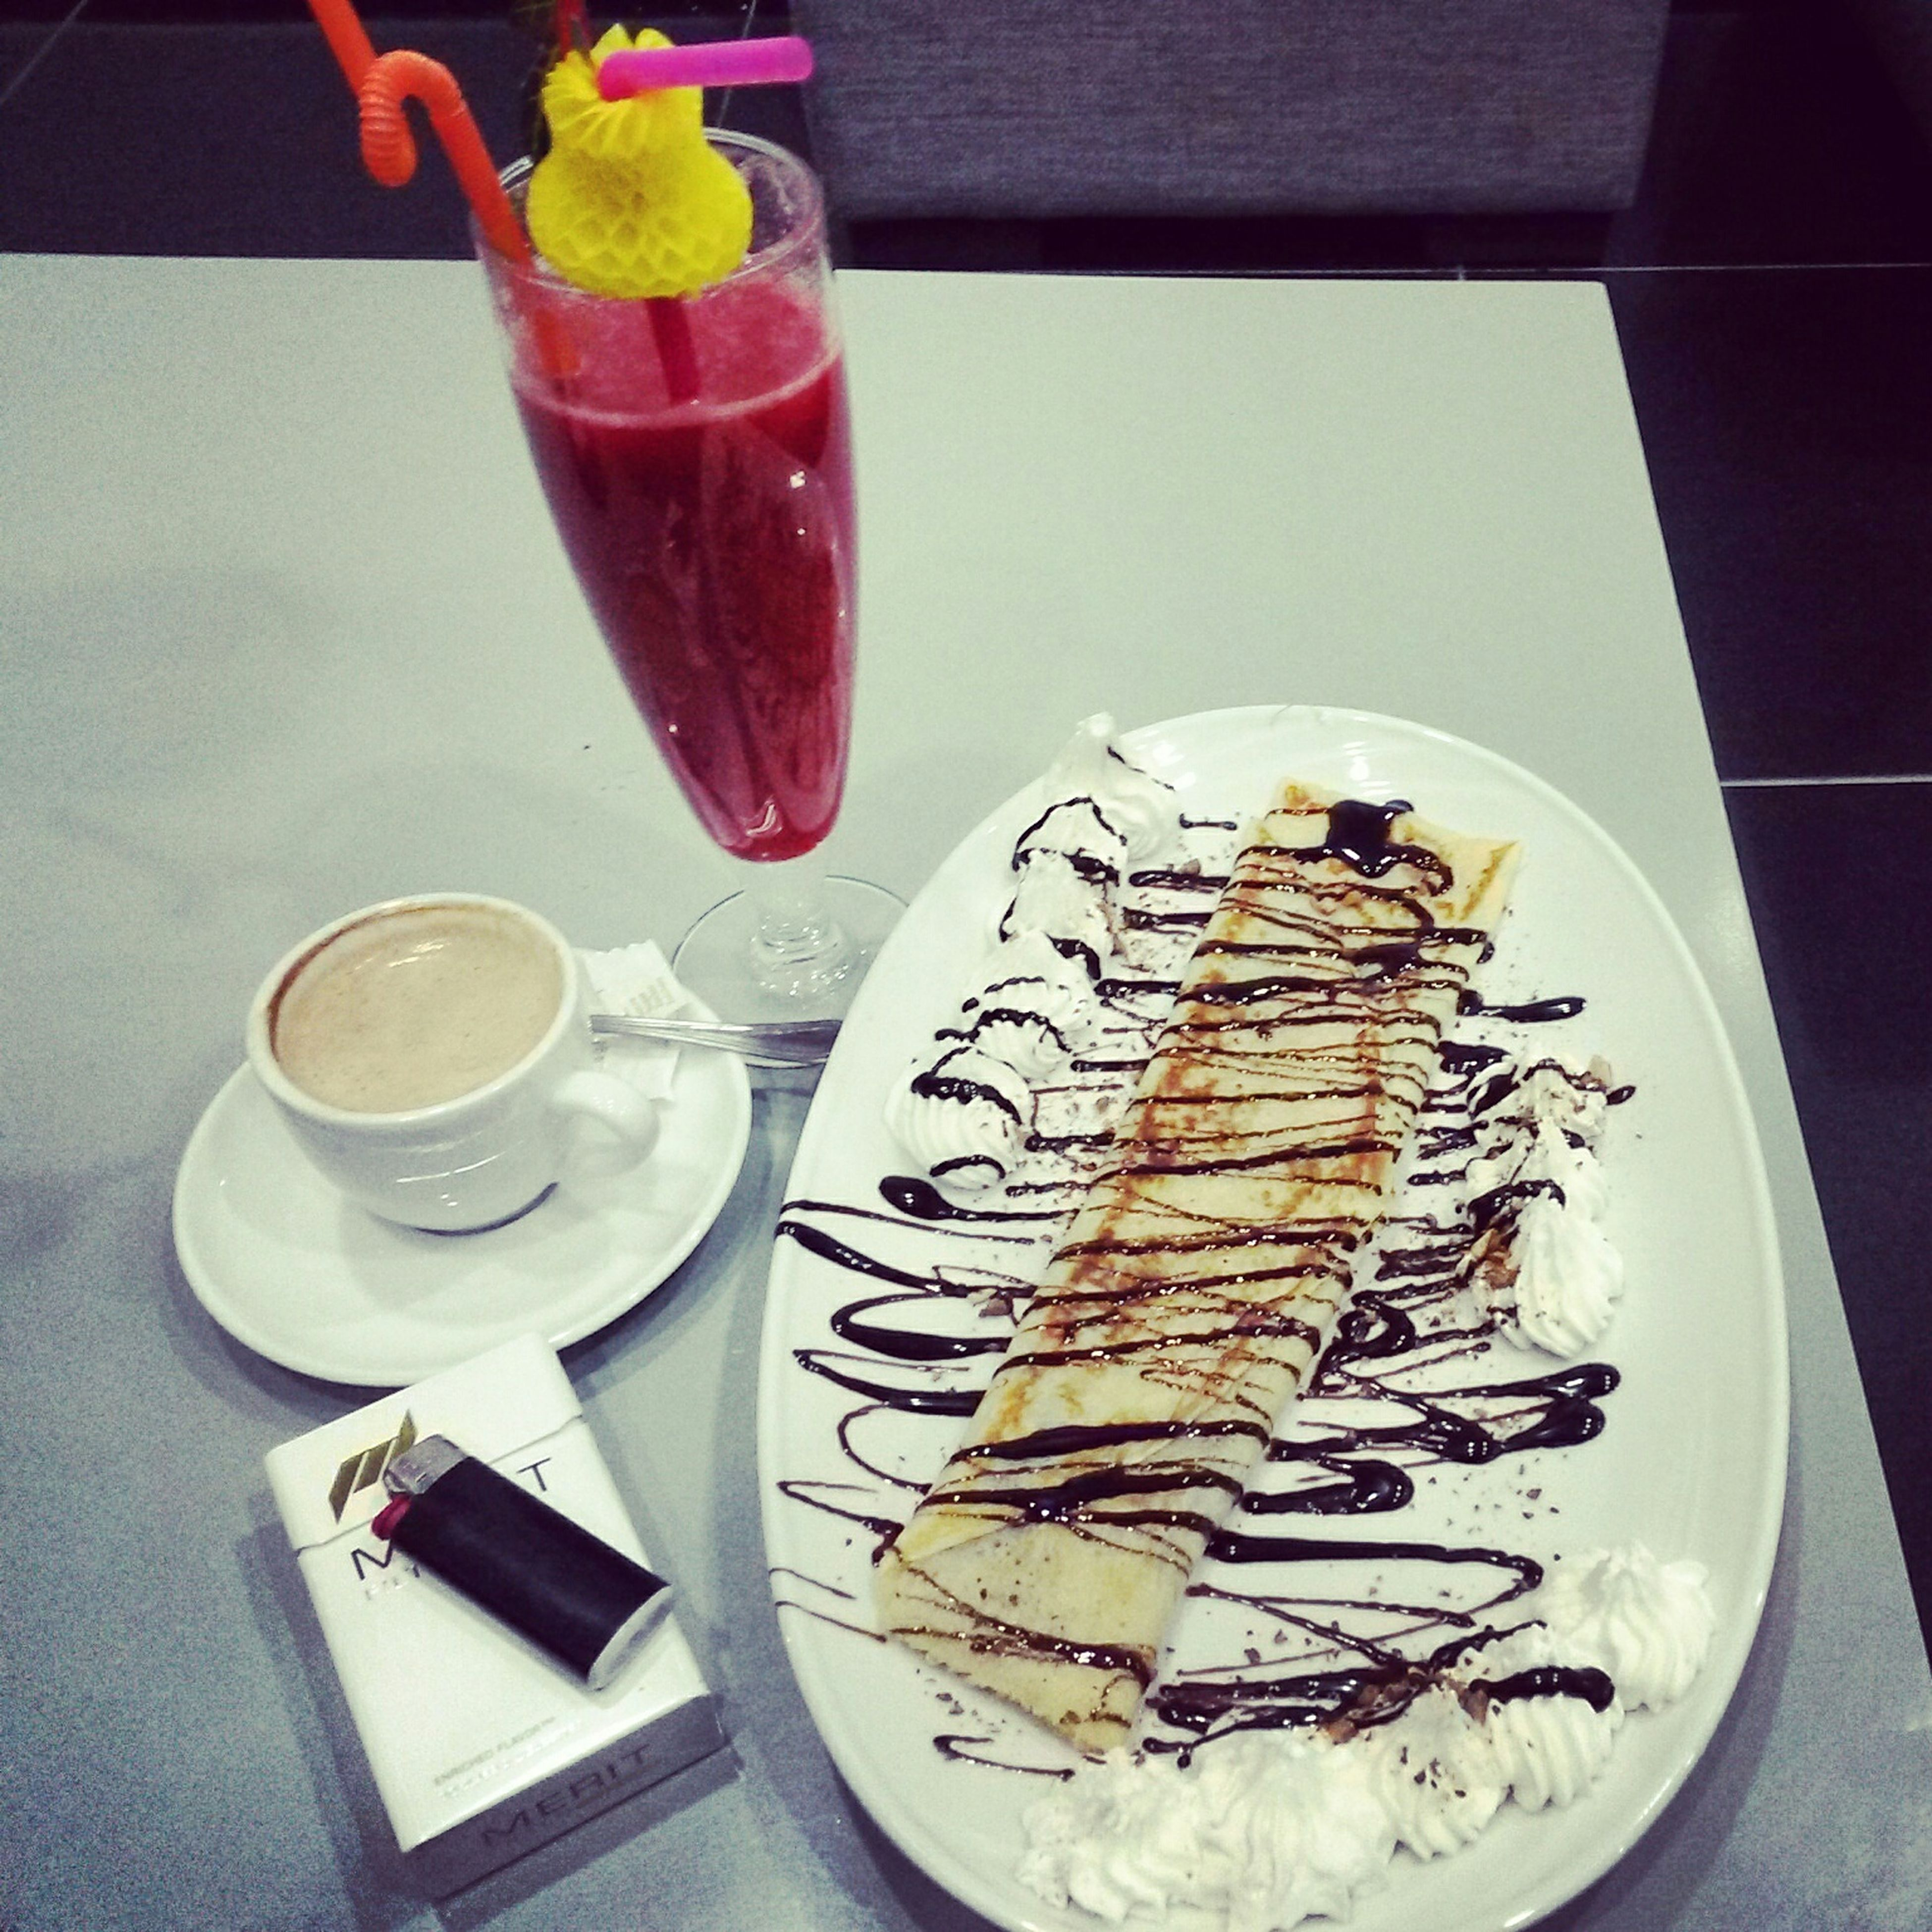 Relaxing 😊 🎶 !!! Crêpes Strawberry Juice Coffee And Cigarettes Peace ✌ ❤